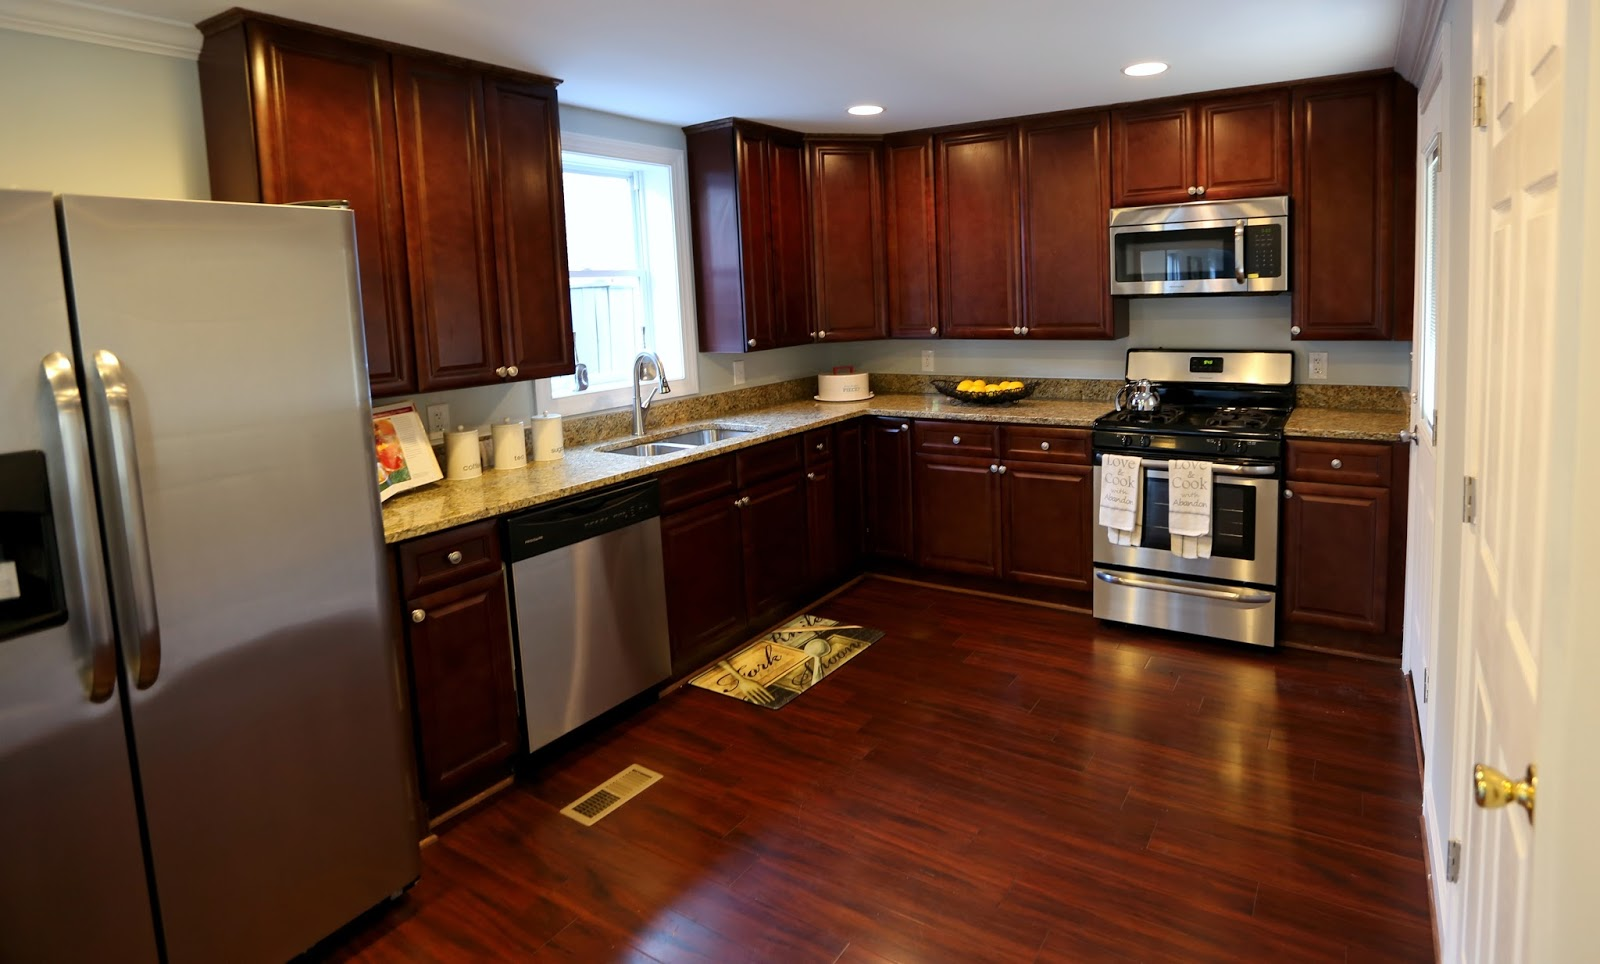 the purpose of this online kitchen remodel cost estimator is to